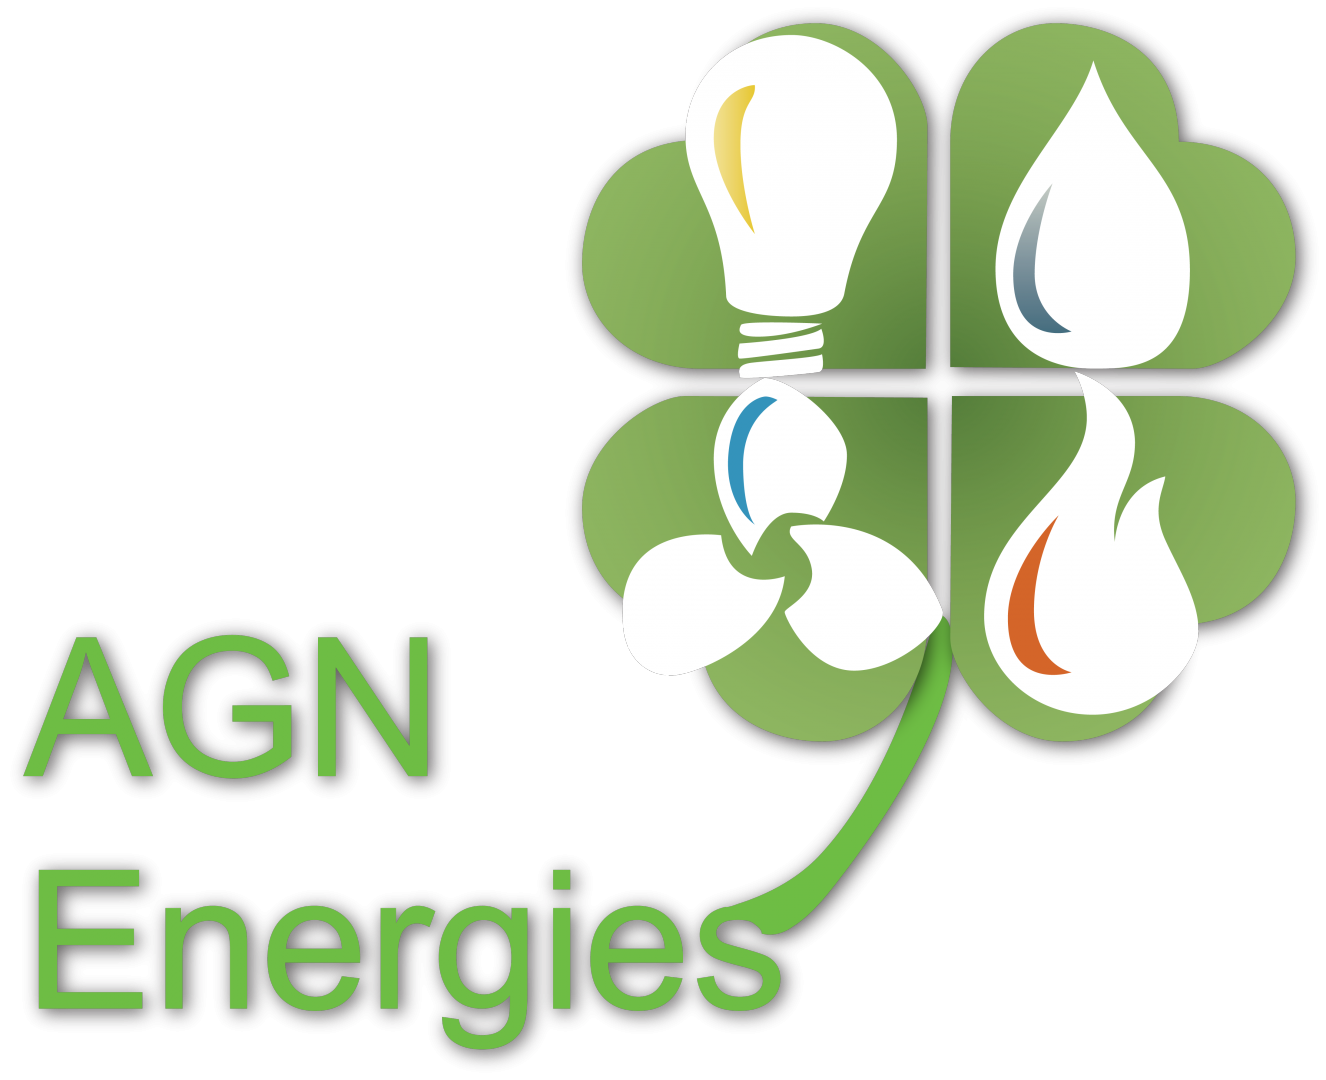 AGN ENERGIES